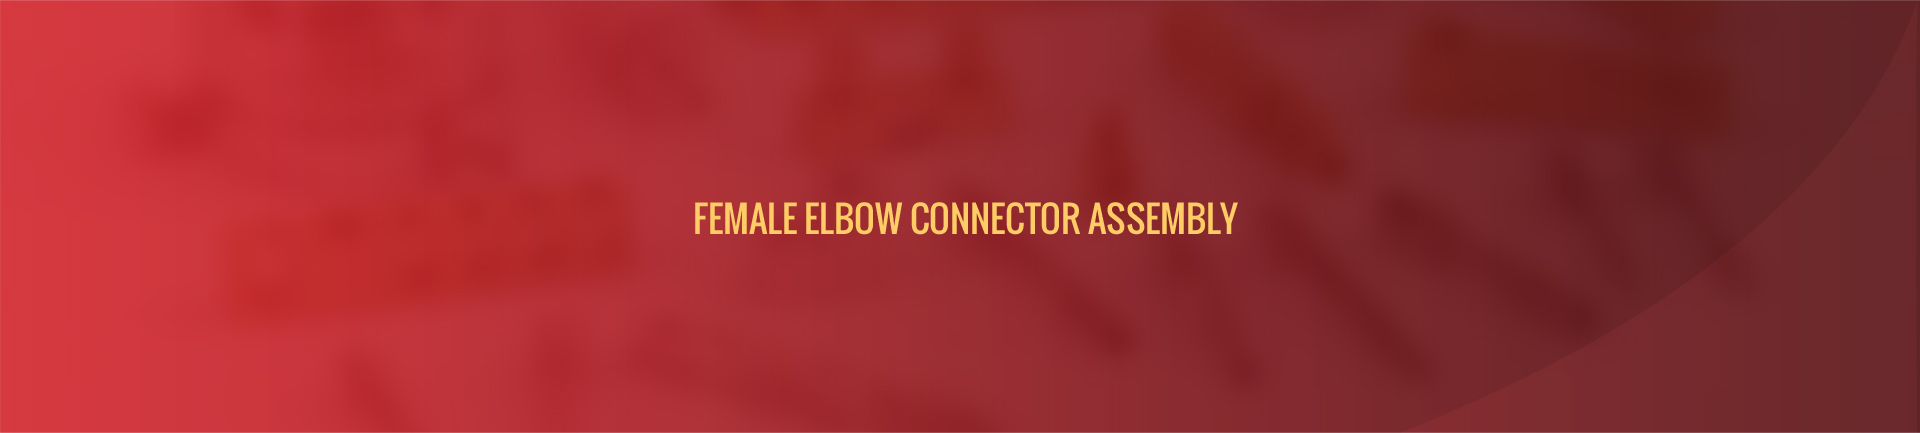 female_elbow_connector_assembly-banner